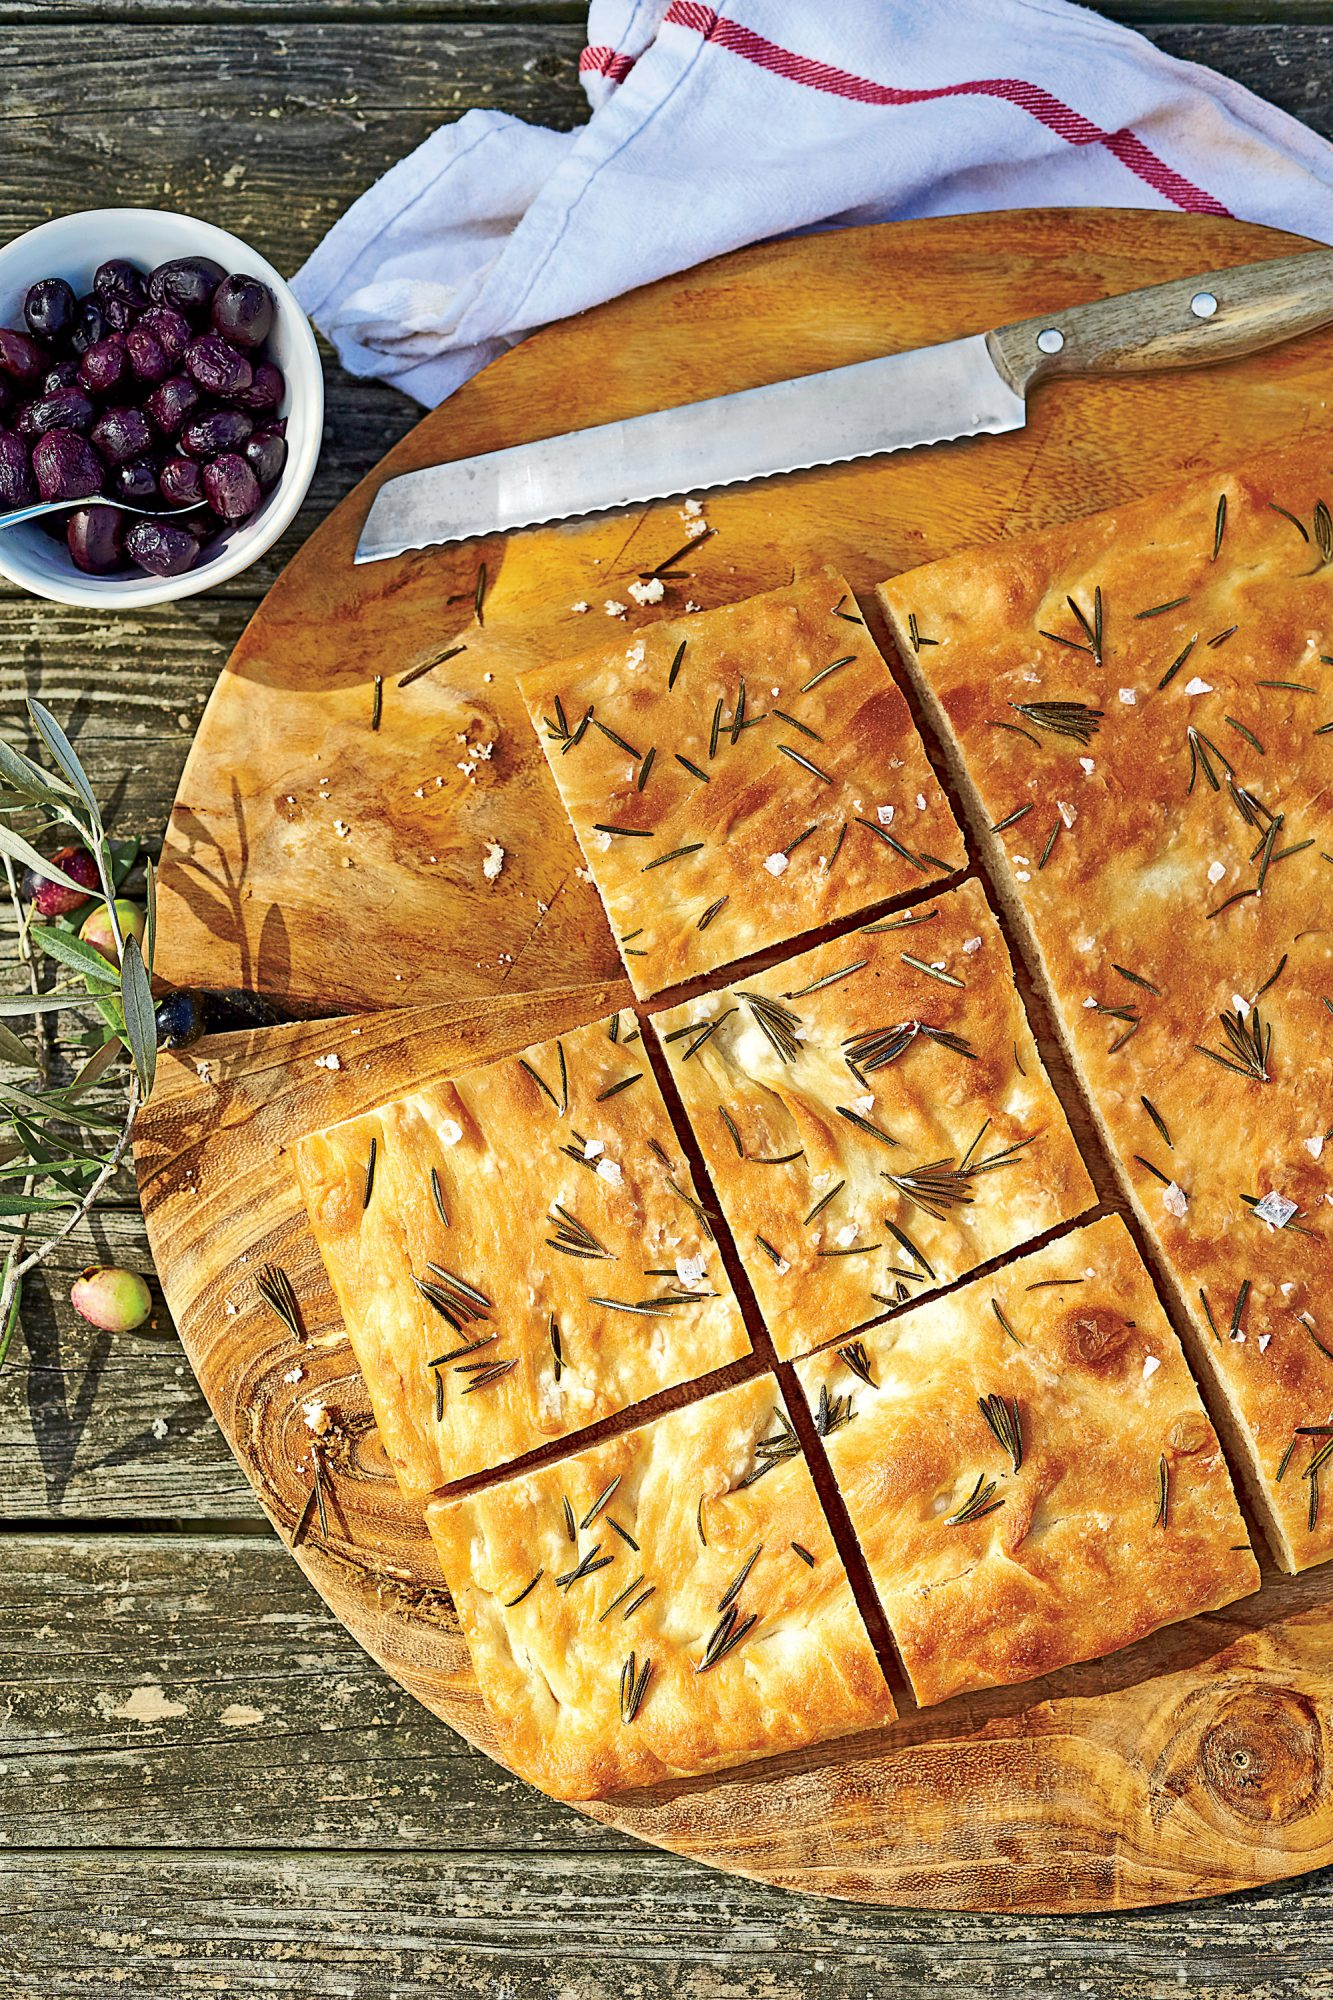 rosemary-focaccia-with-stewed-grapes-and-olives